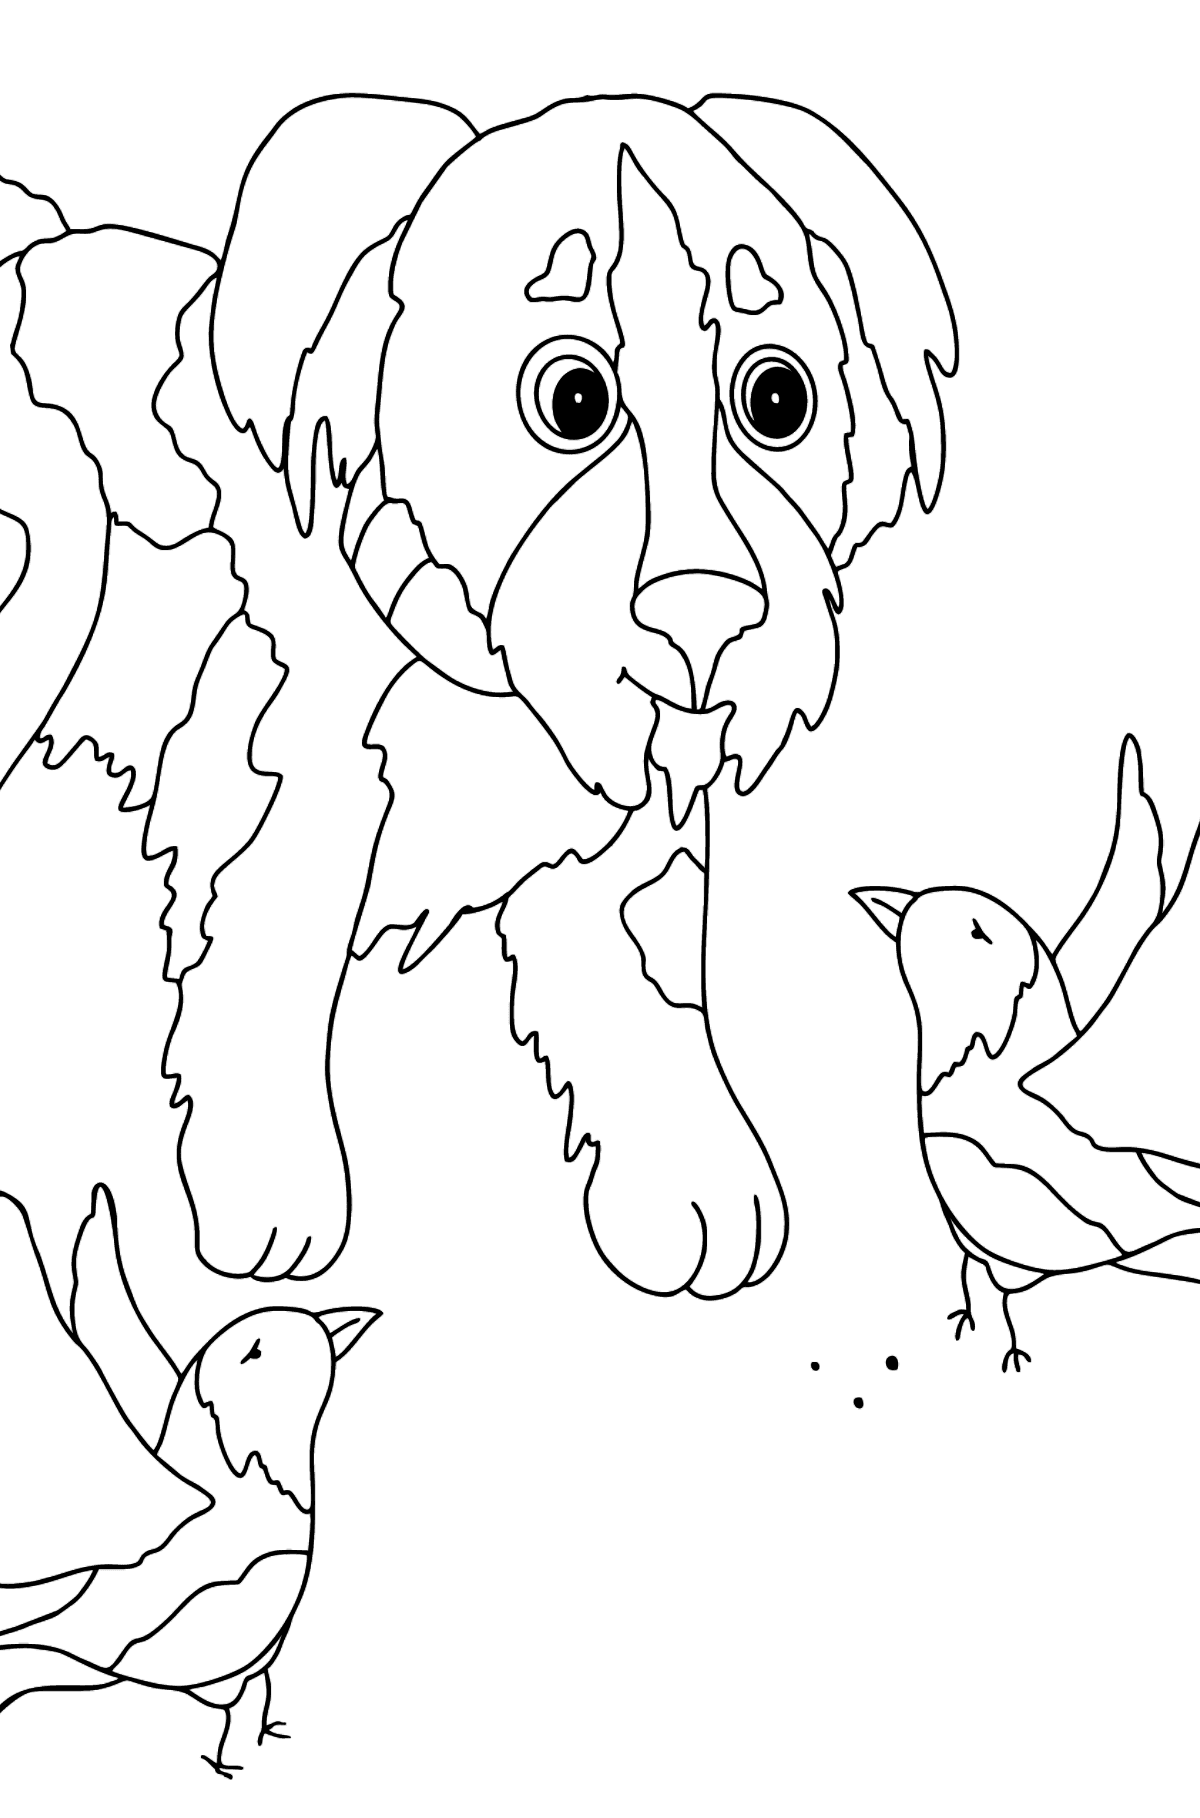 Coloring Page - A Dog is Playing with Beautiful Birds - Coloring Pages for Kids